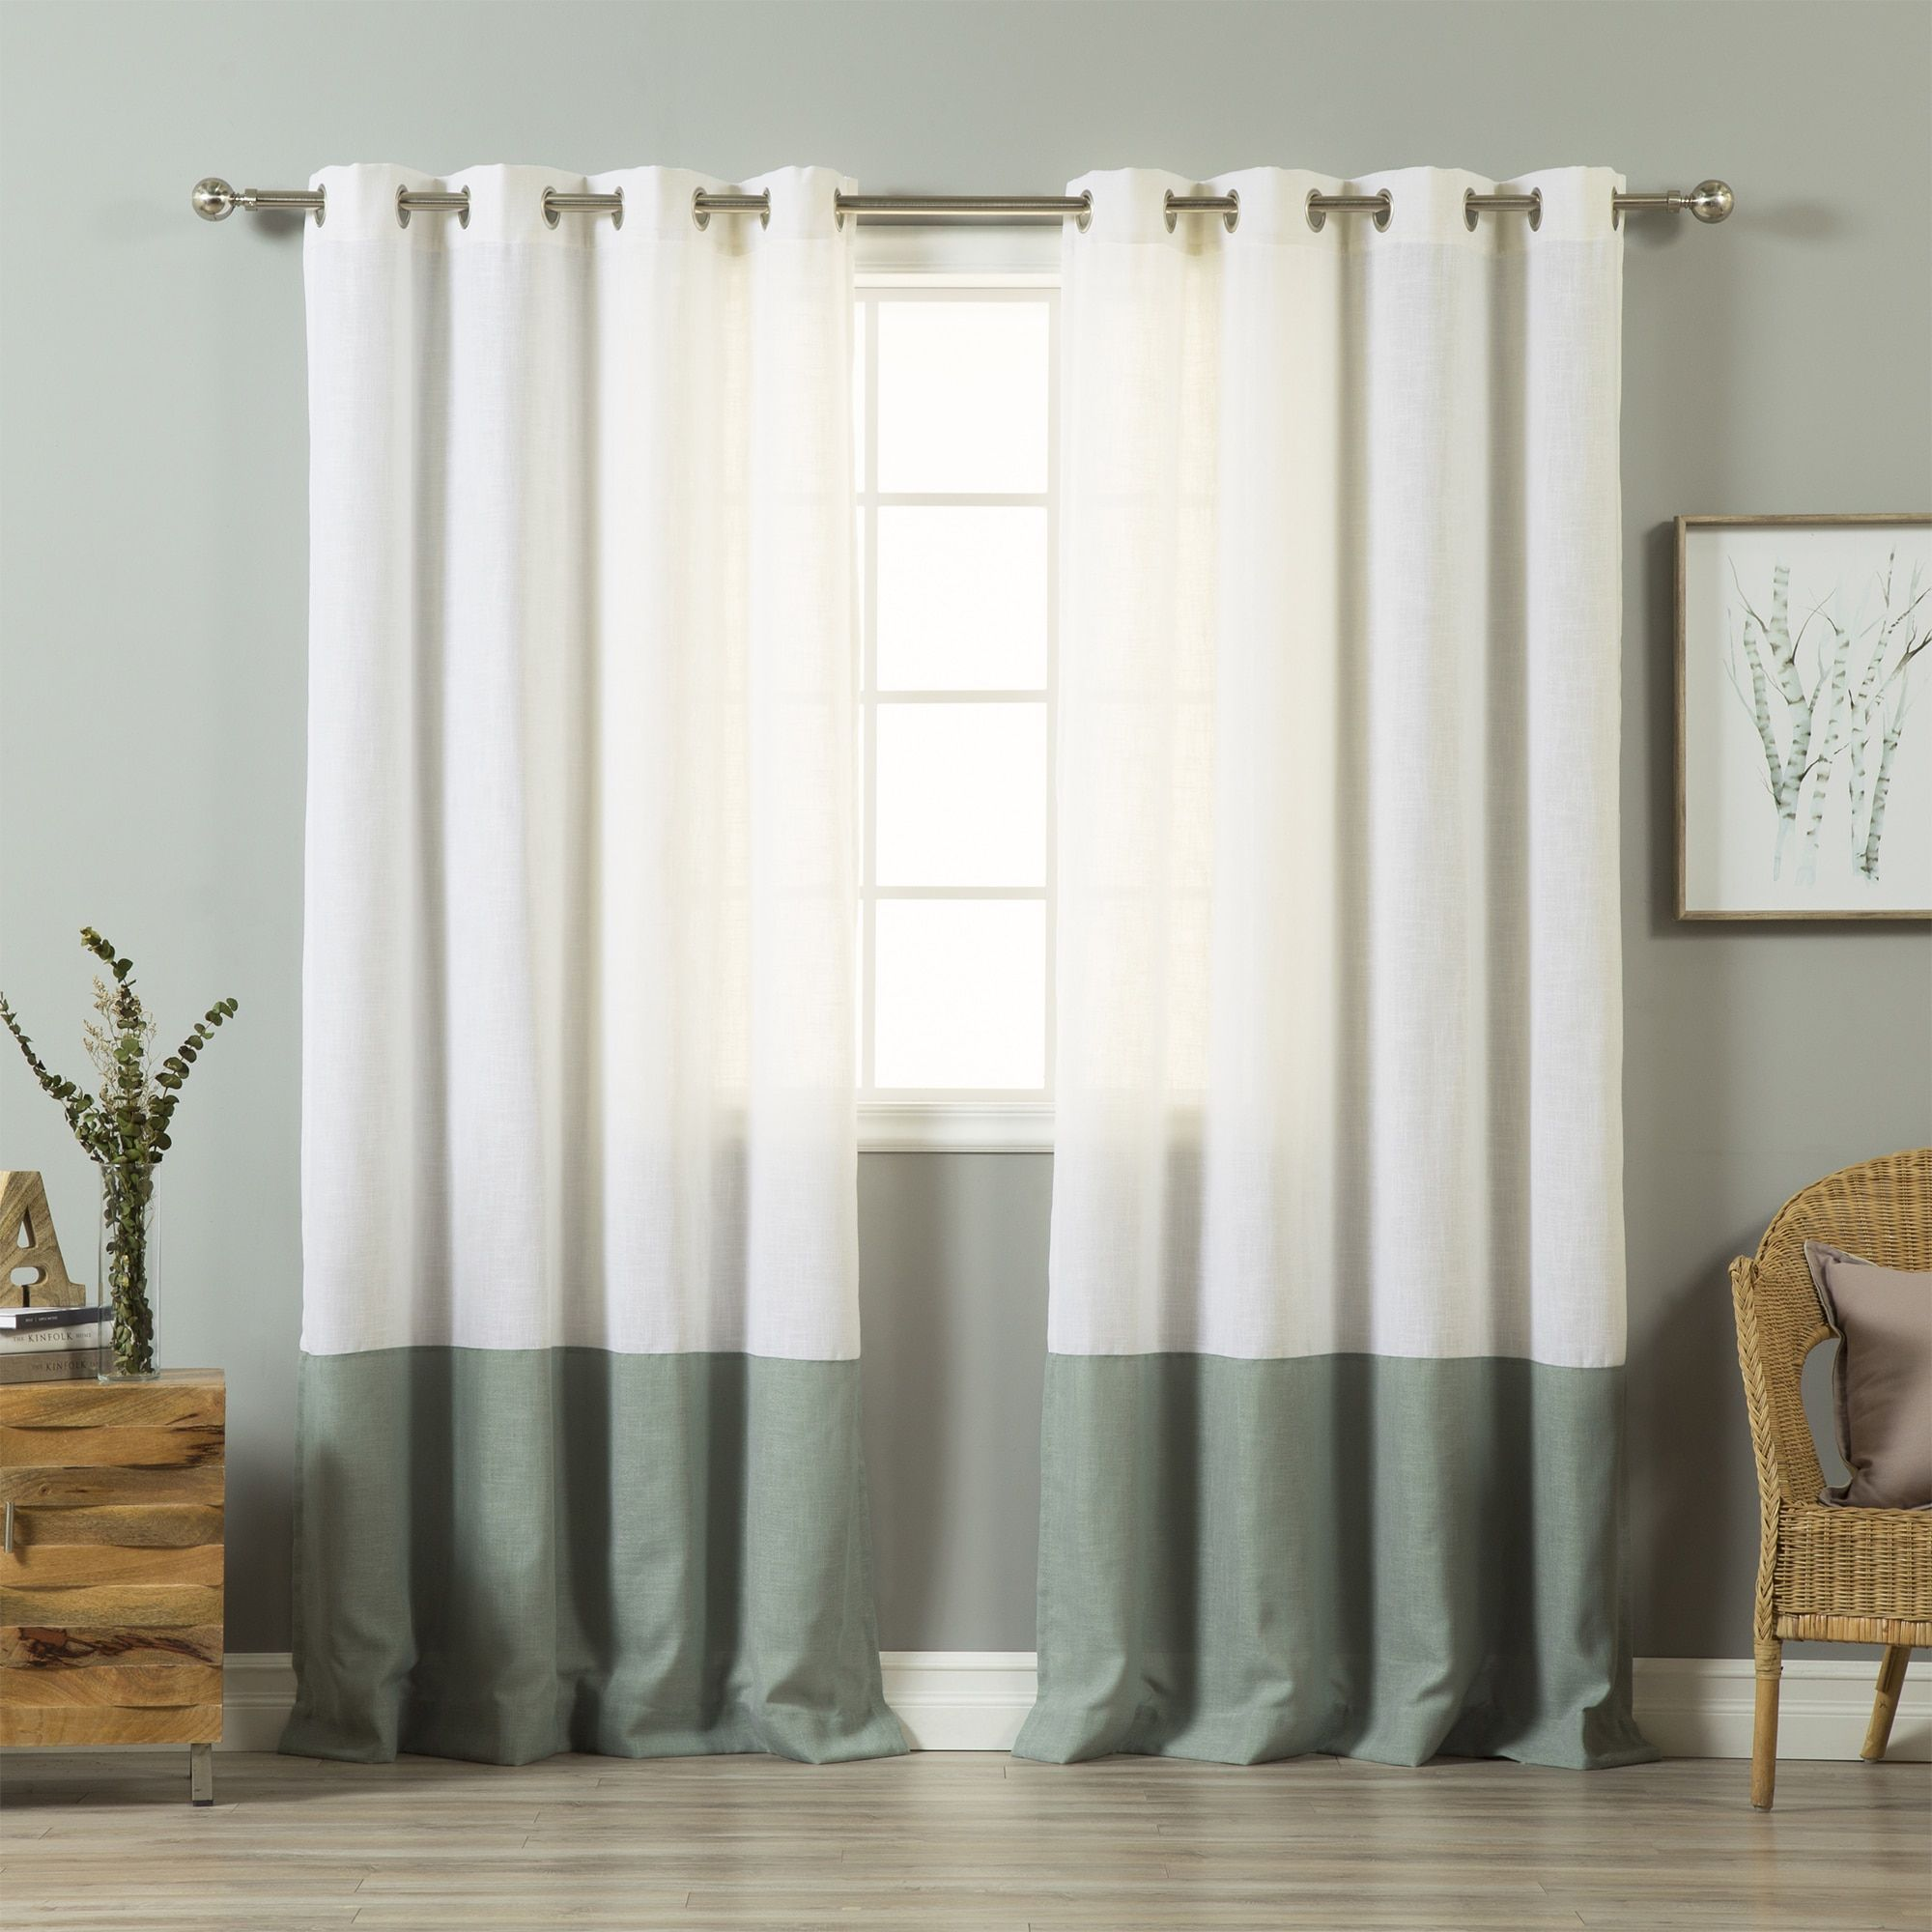 Window coverings to block sun  aurora home blend grommet top inch curtain panel pair  products